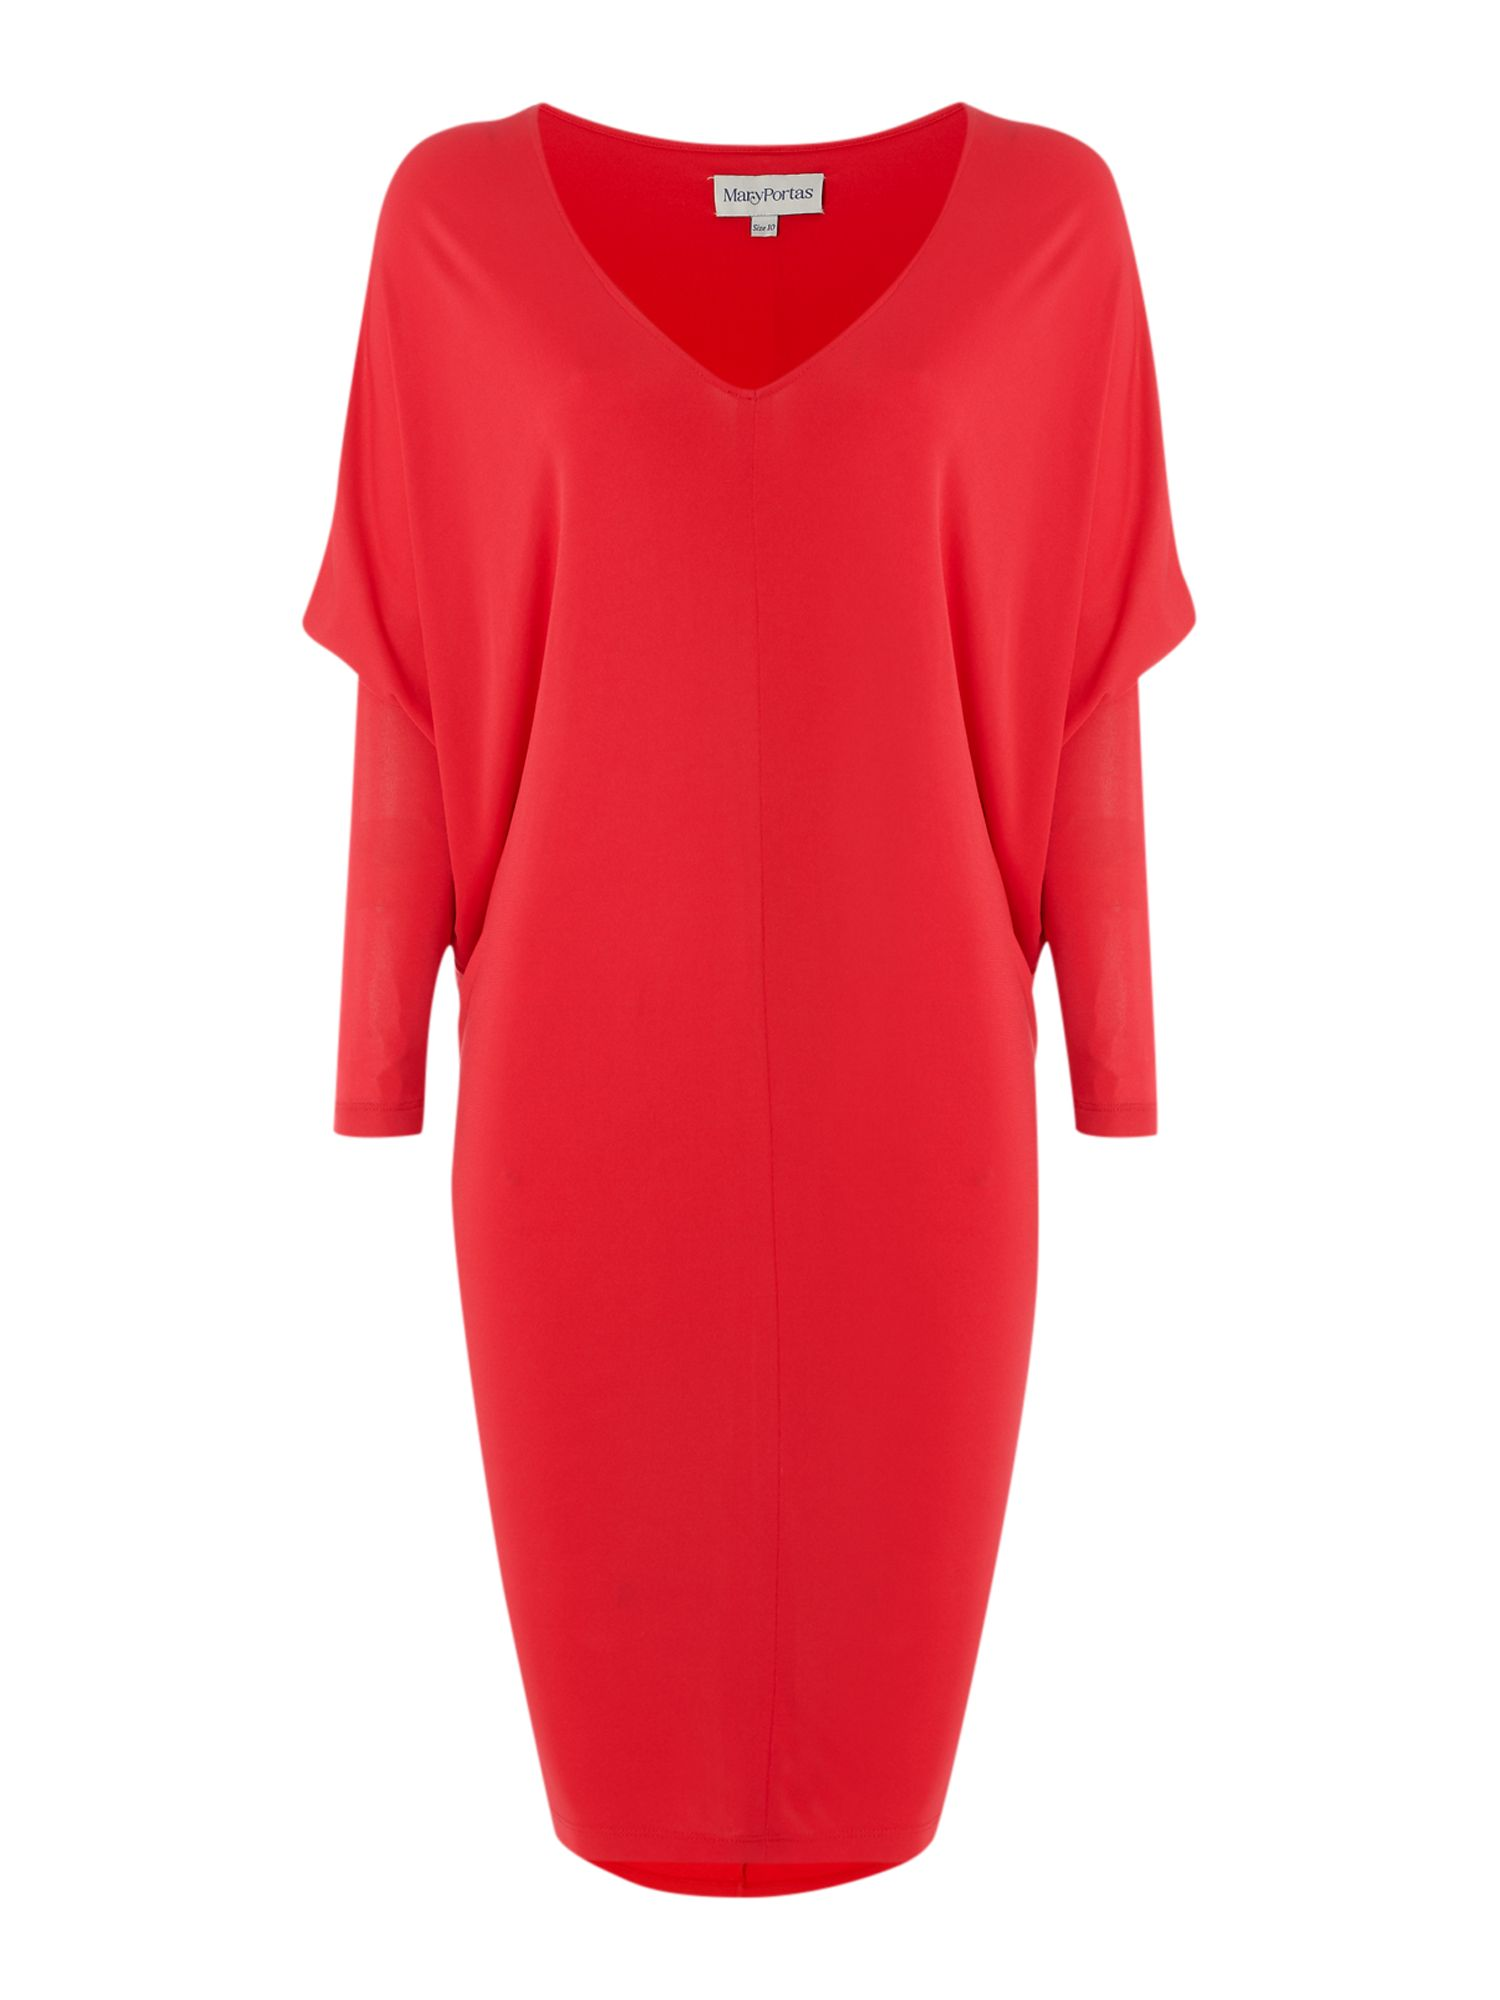 Kite crepe dress w/mesh sleeves